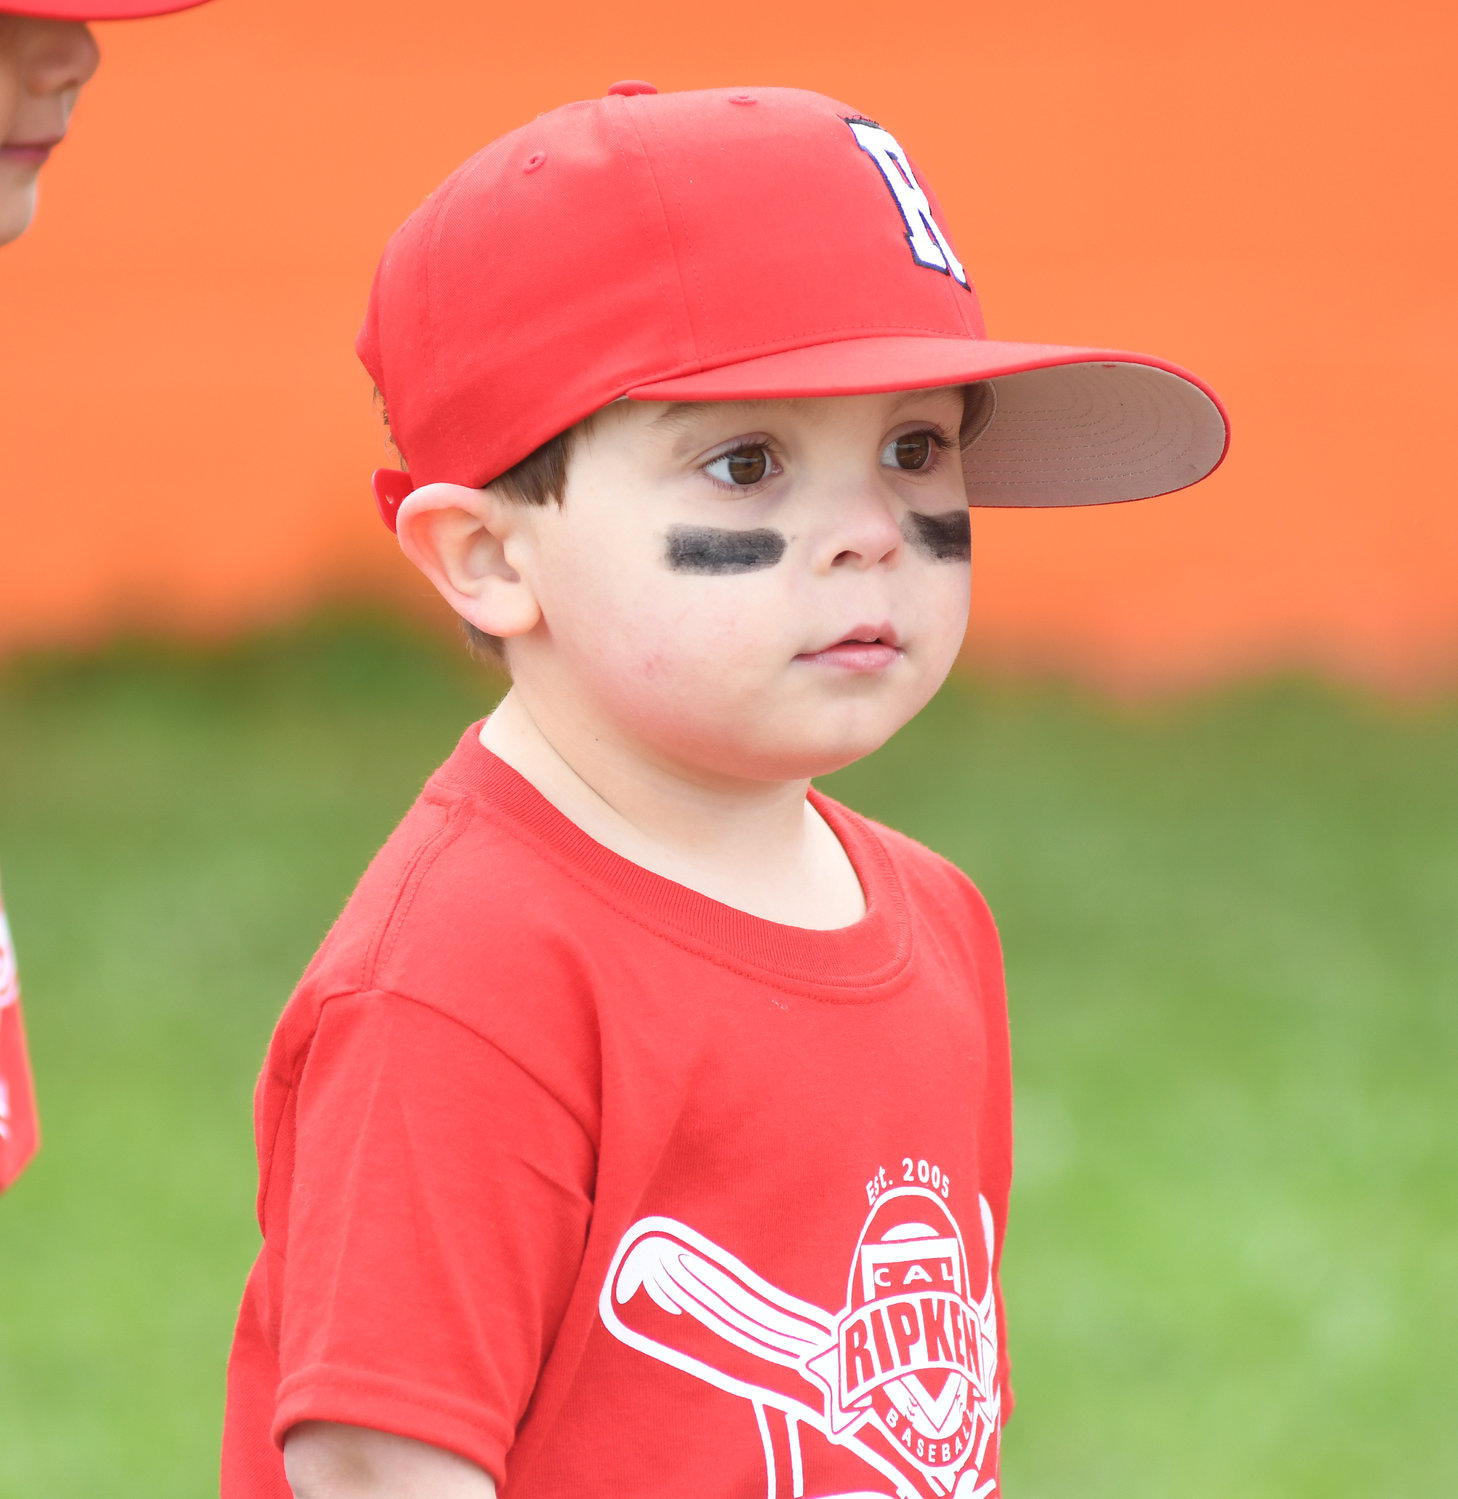 Ethan Wilkinson on the Rotary T-Ball team watches the ceremony that gets underway.